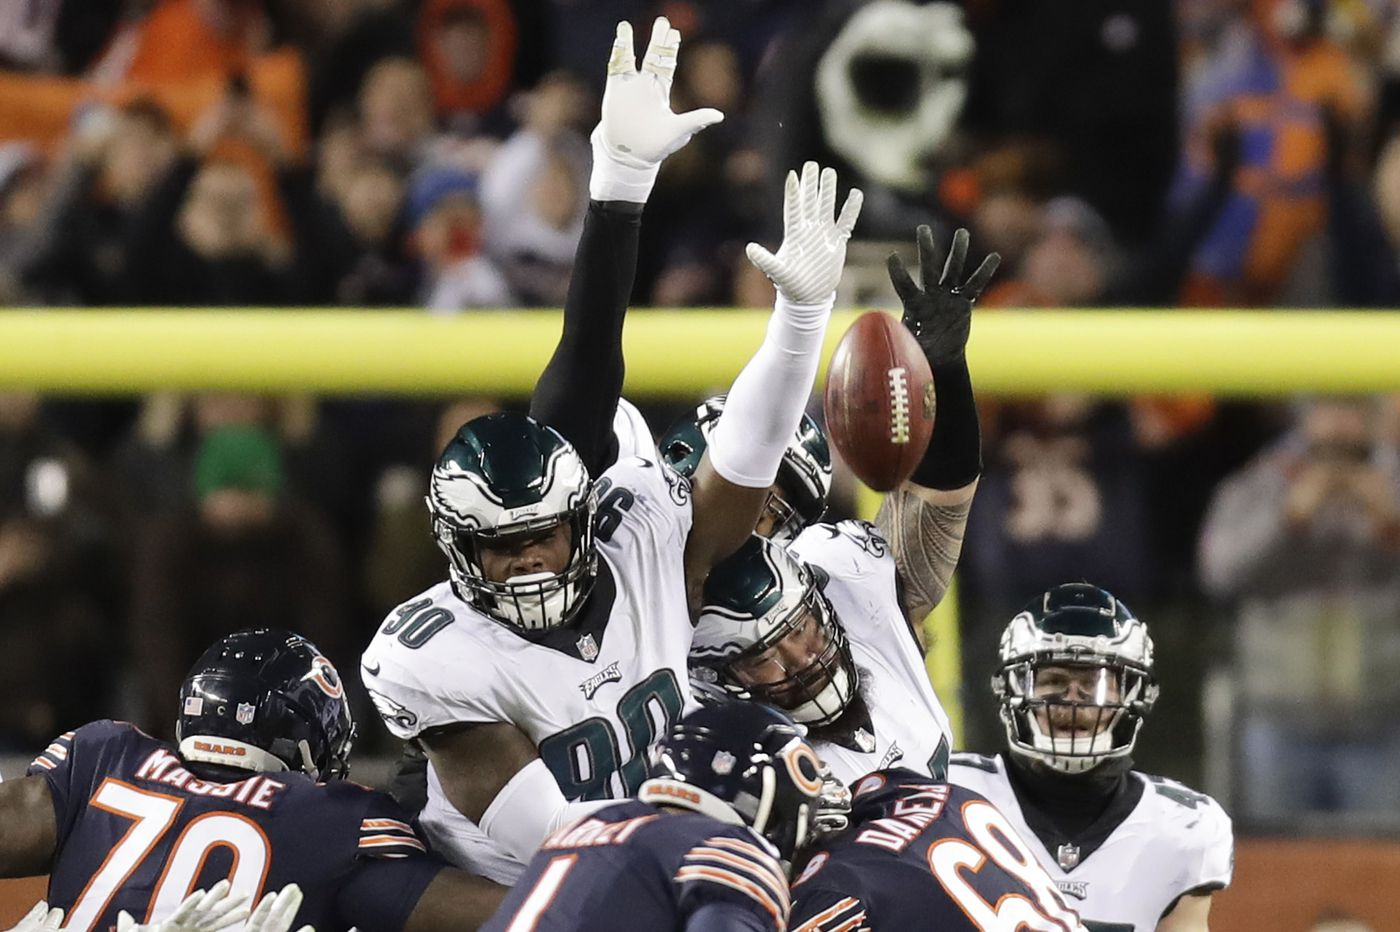 Eagles 'bearly' escape Chicago to play another day: The front pages